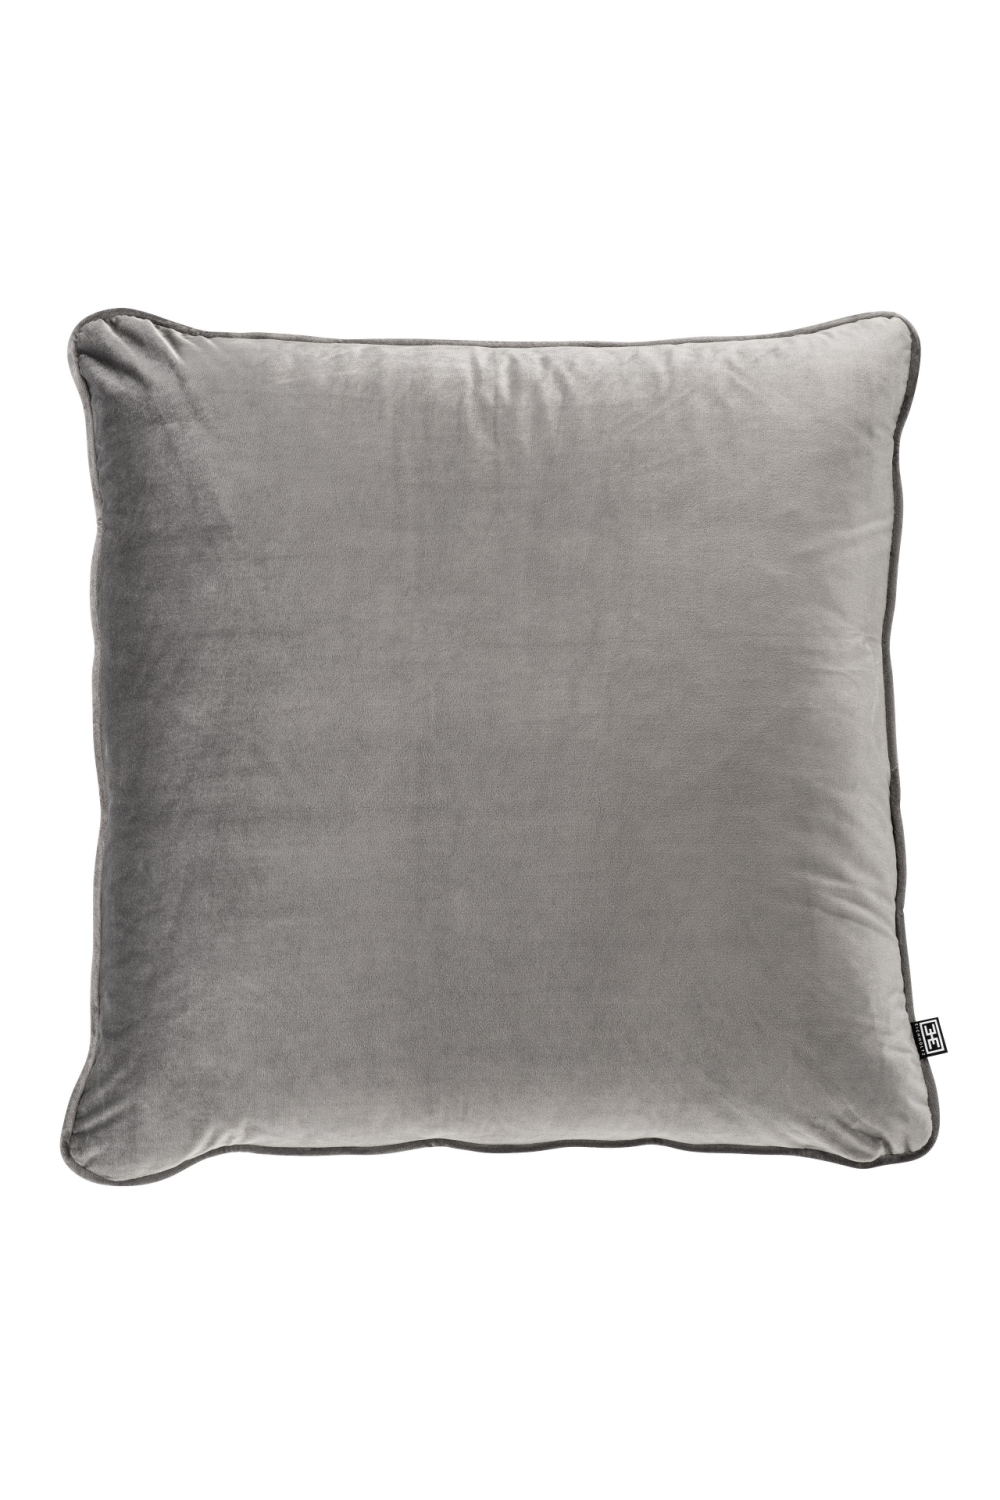 Gray Velvet Pillow | Eichholtz Roche | OROA - Modern Luxury Decor